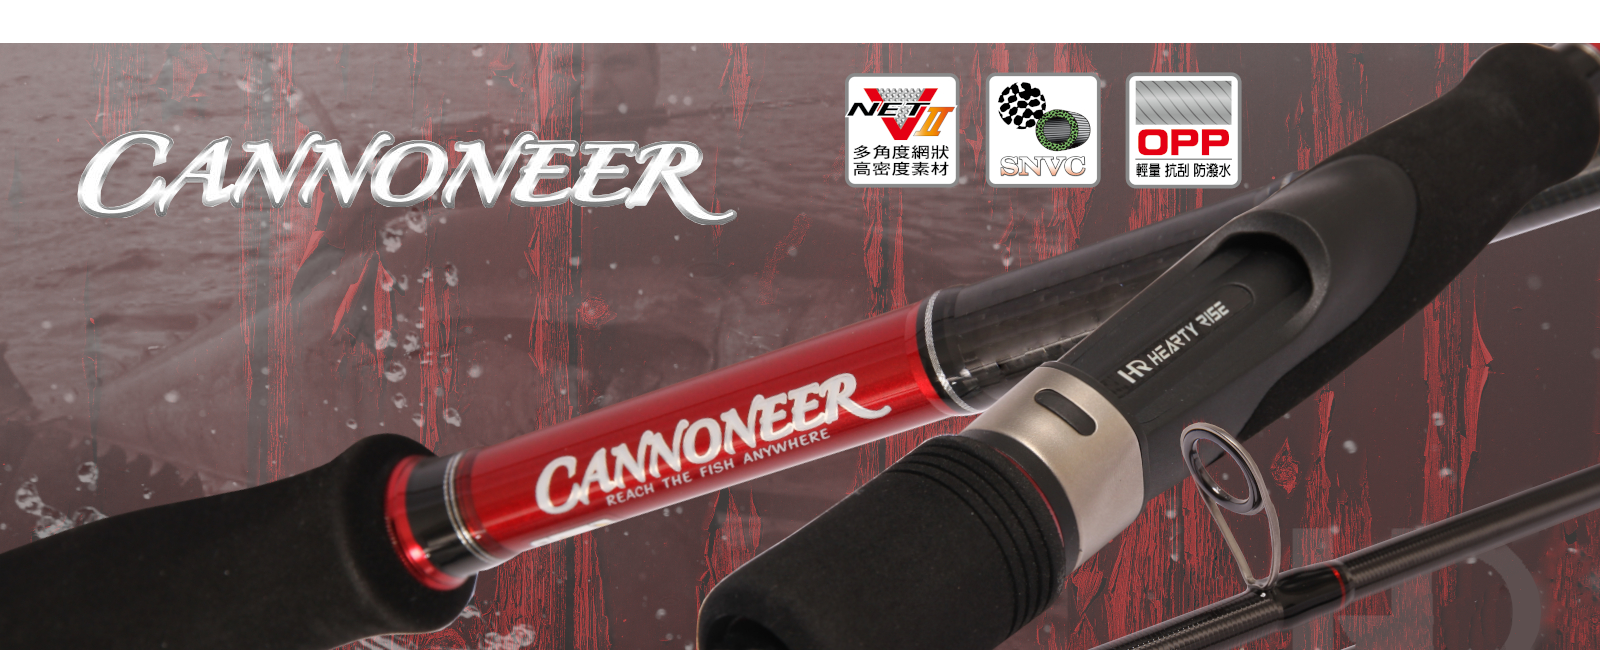 Fishman Tackle - Hearty Rise Cannoneer Fishing Rod Banner